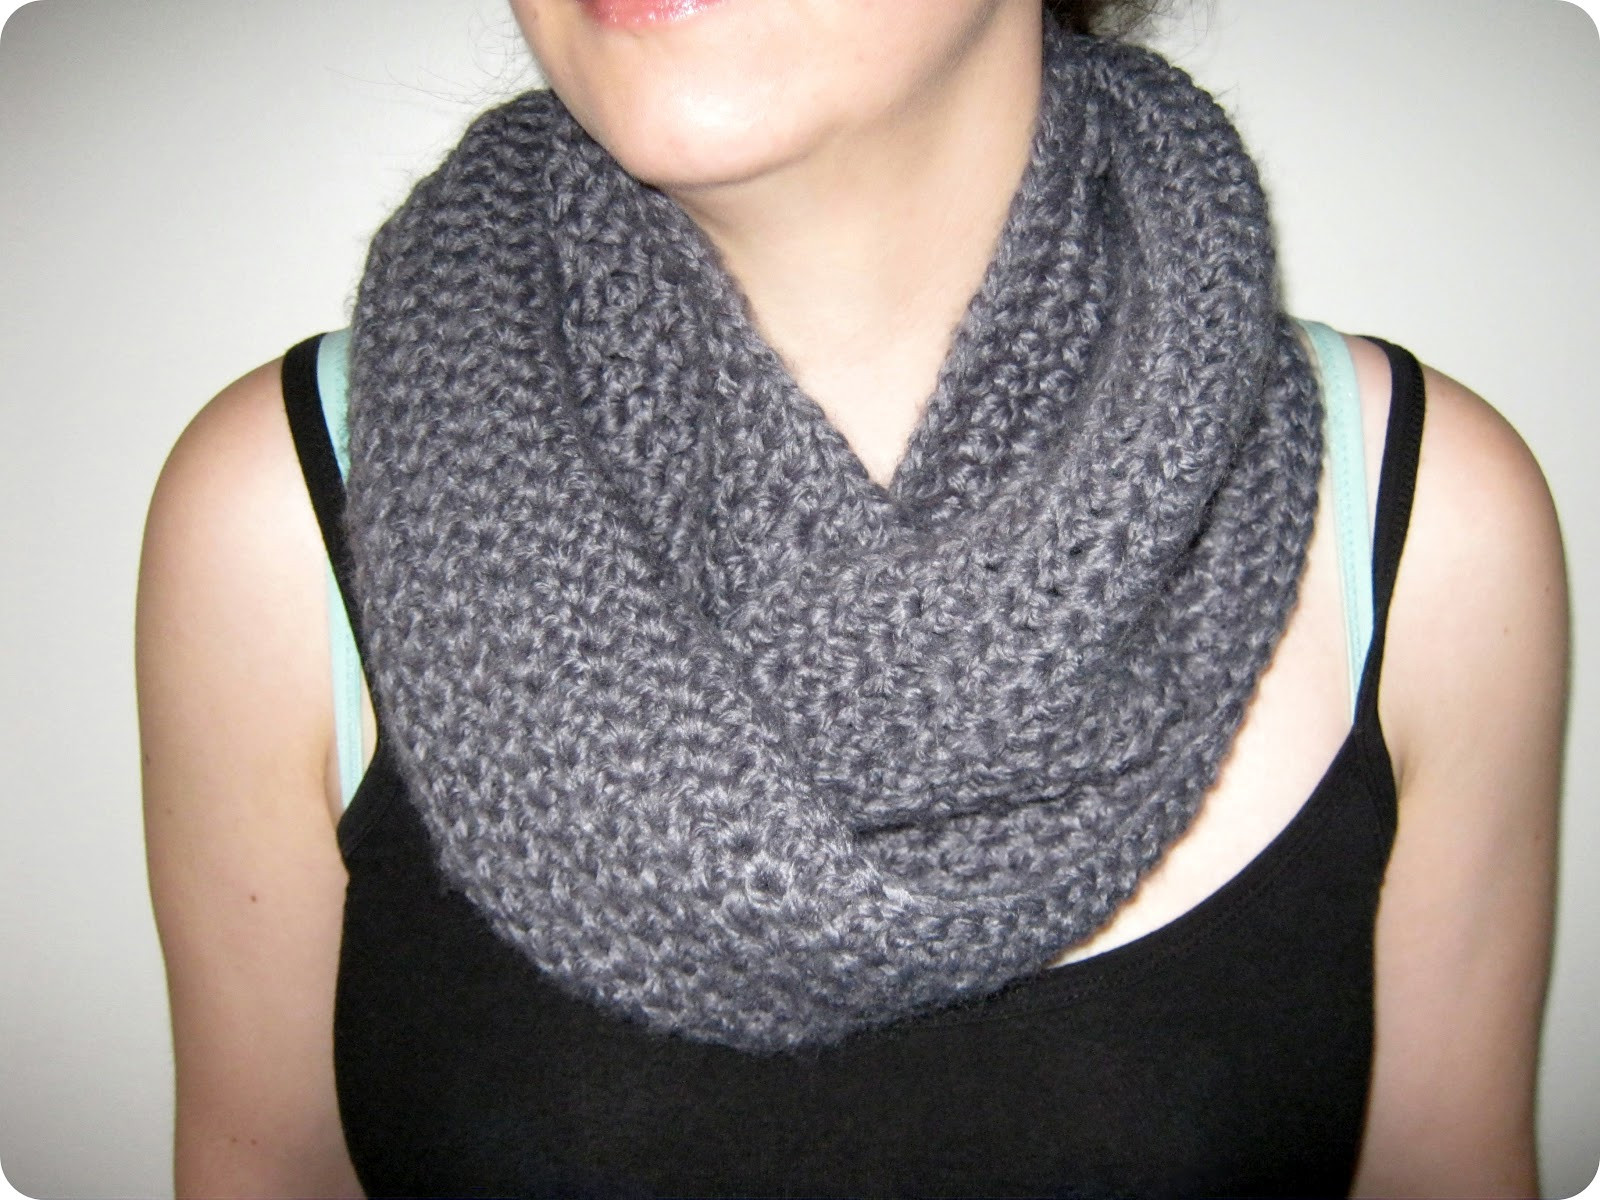 New Stitch by Fay Double Loop Crochet Infinity Scarf Cowl Pattern Infinity Cowl Crochet Pattern Of New 32 Super Easy Crochet Infinity Scarf Ideas Infinity Cowl Crochet Pattern